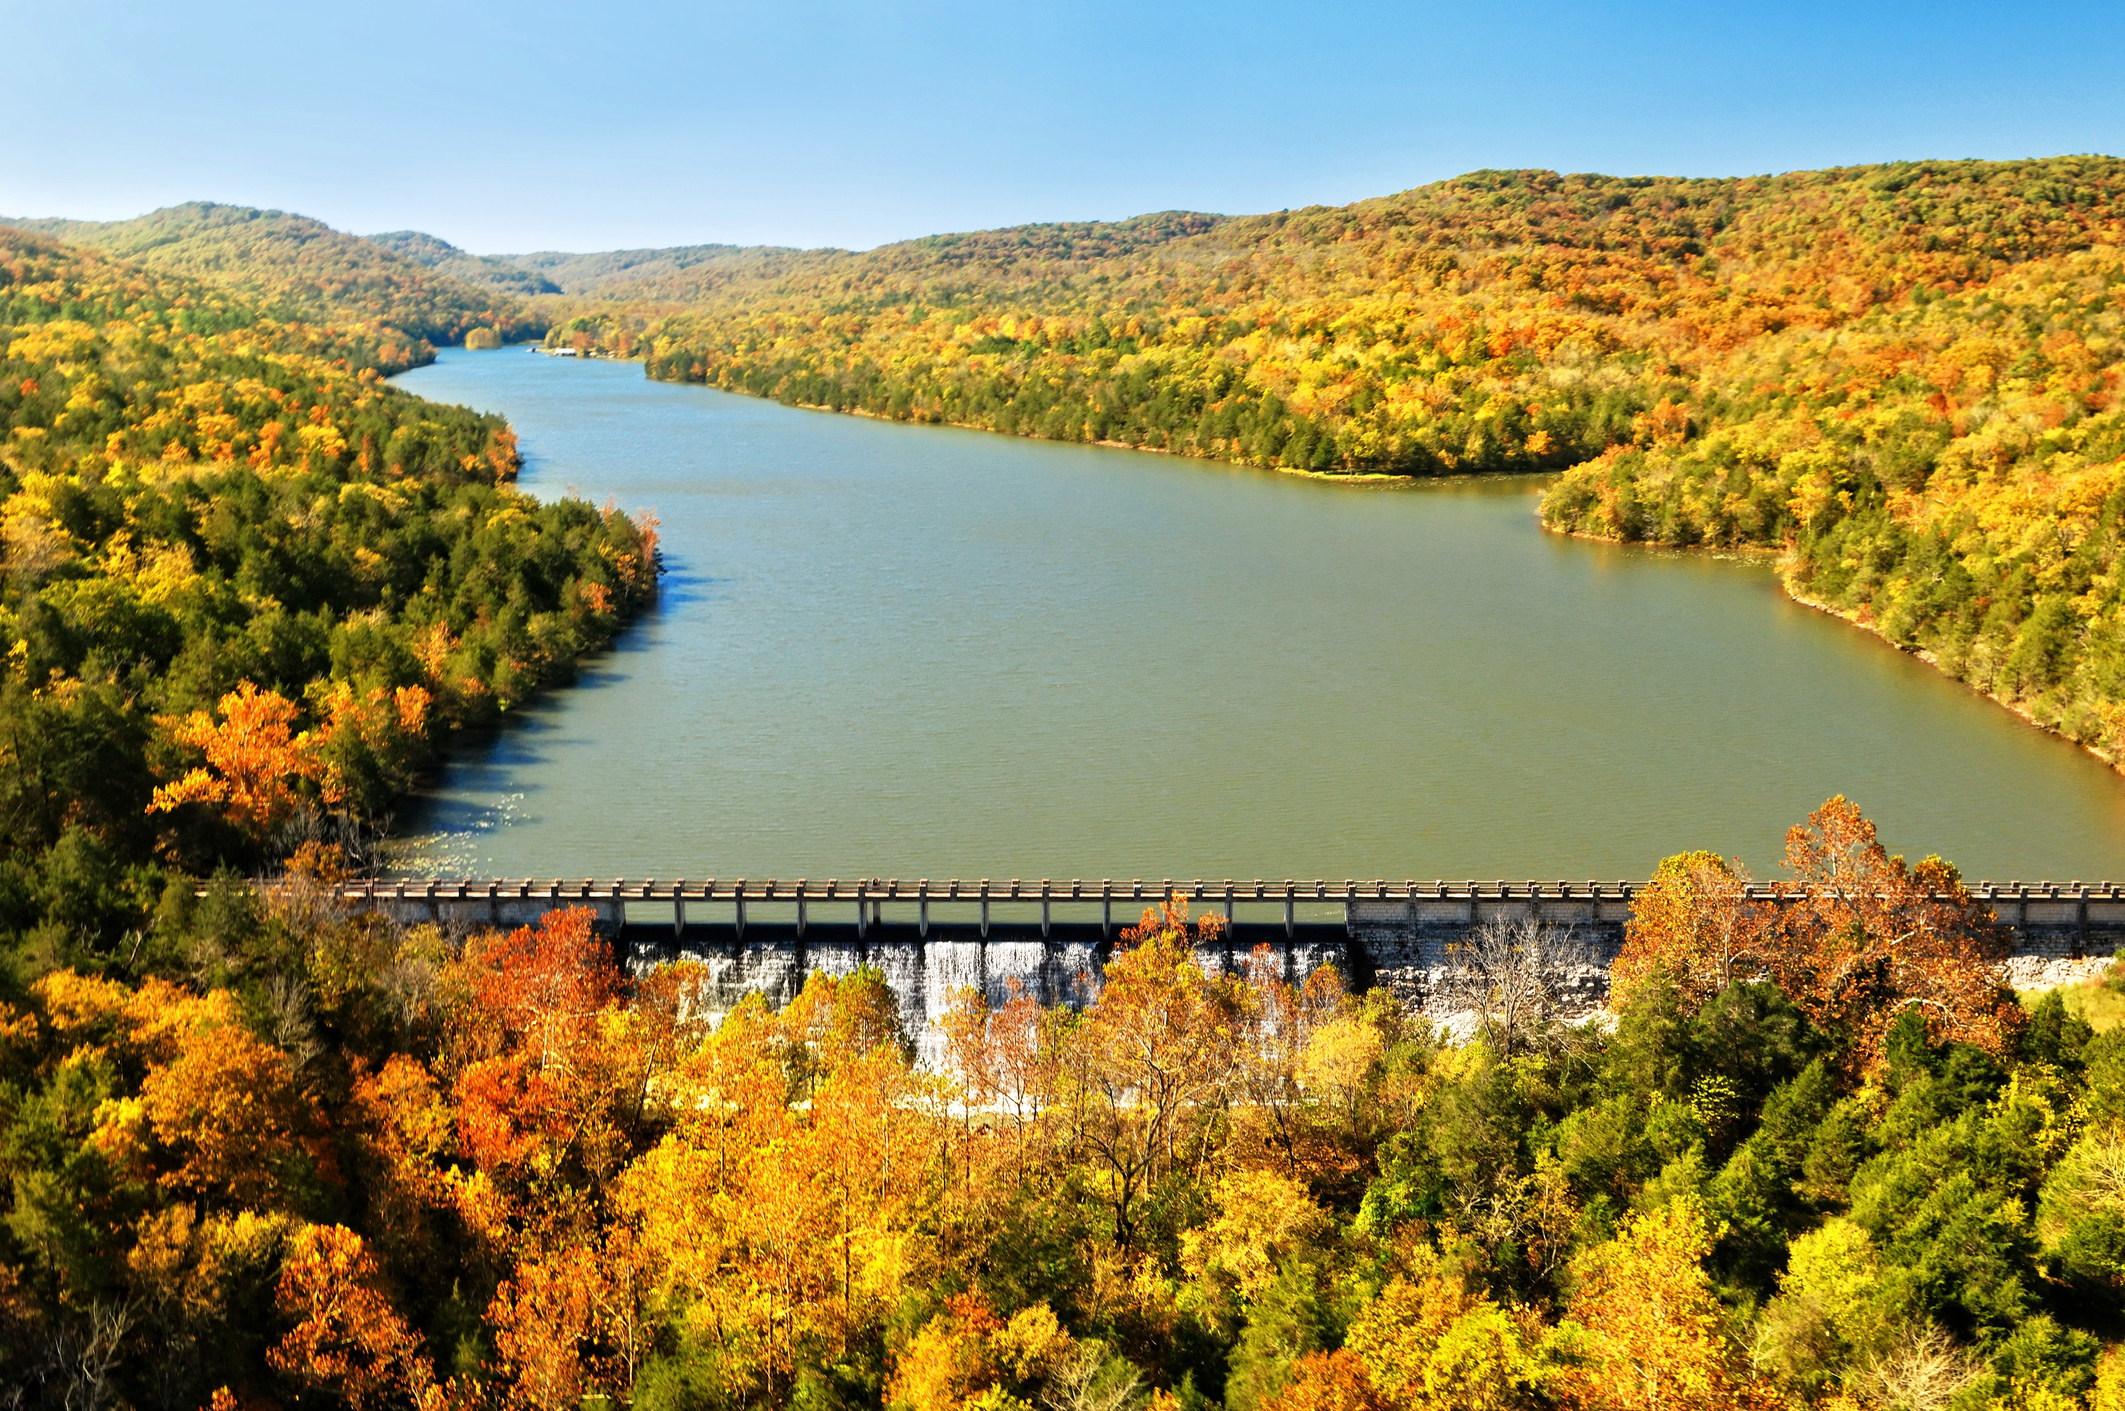 A drone shot of Eureka Springs in autumn